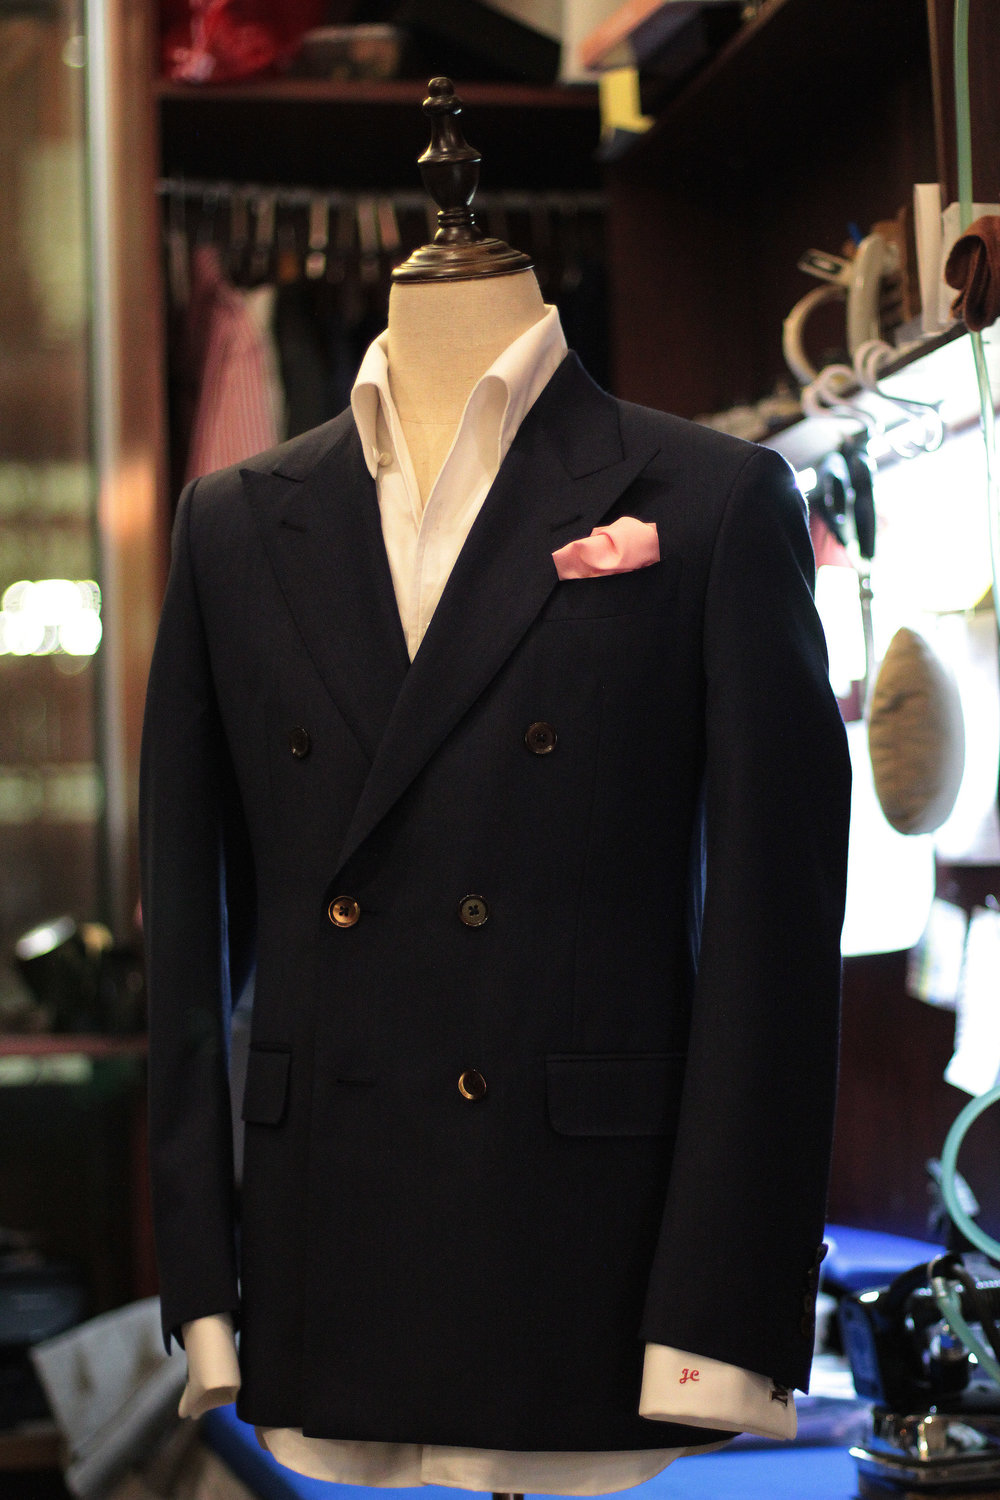 Mr Sooth Sayer Made Suits Vitale Barberis Canonico Tailor Singapore Suits.JPG